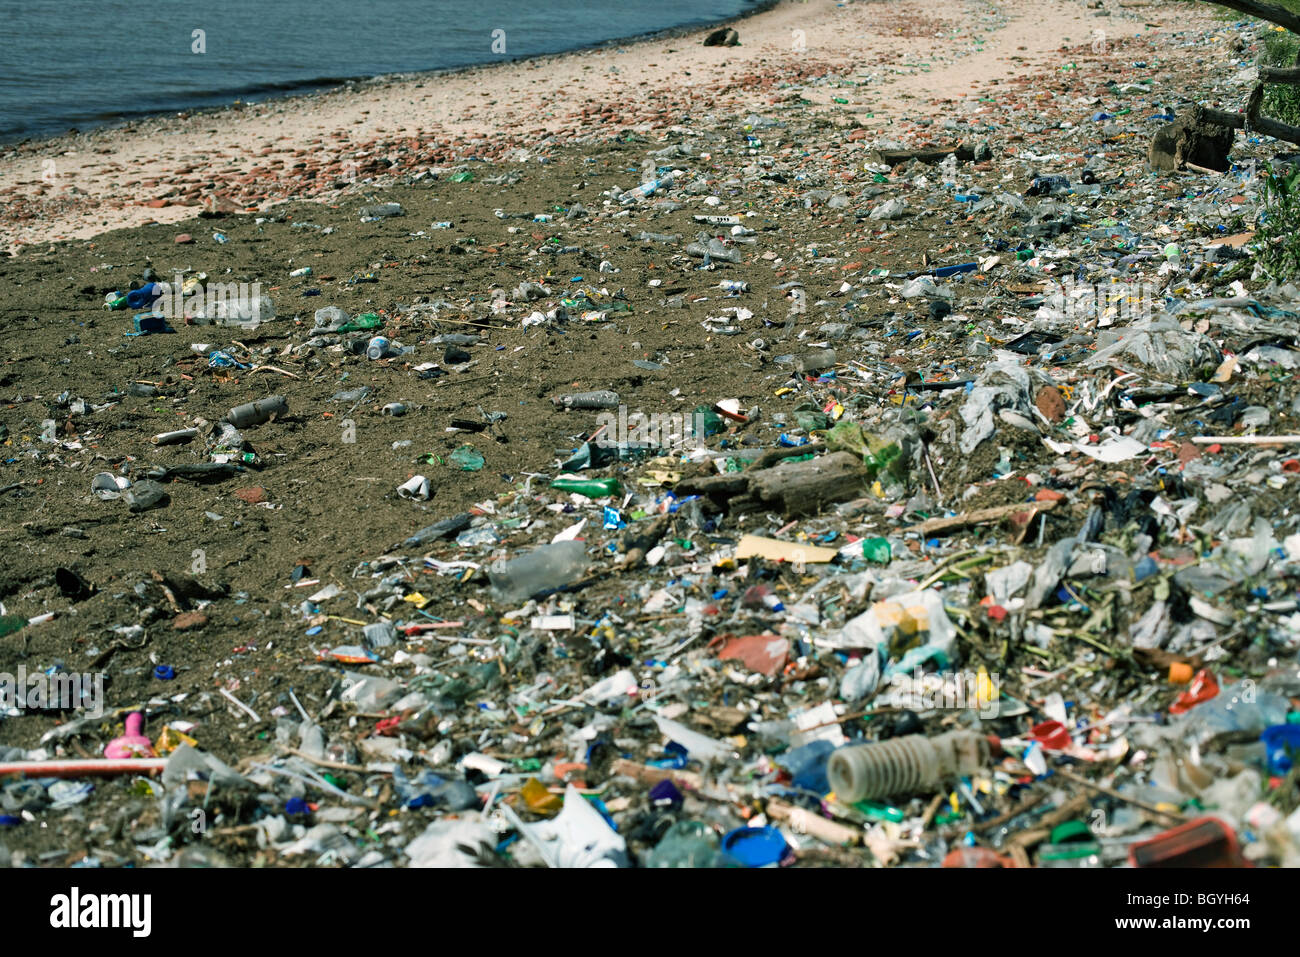 Beach strewn with washed up garbage - Stock Image